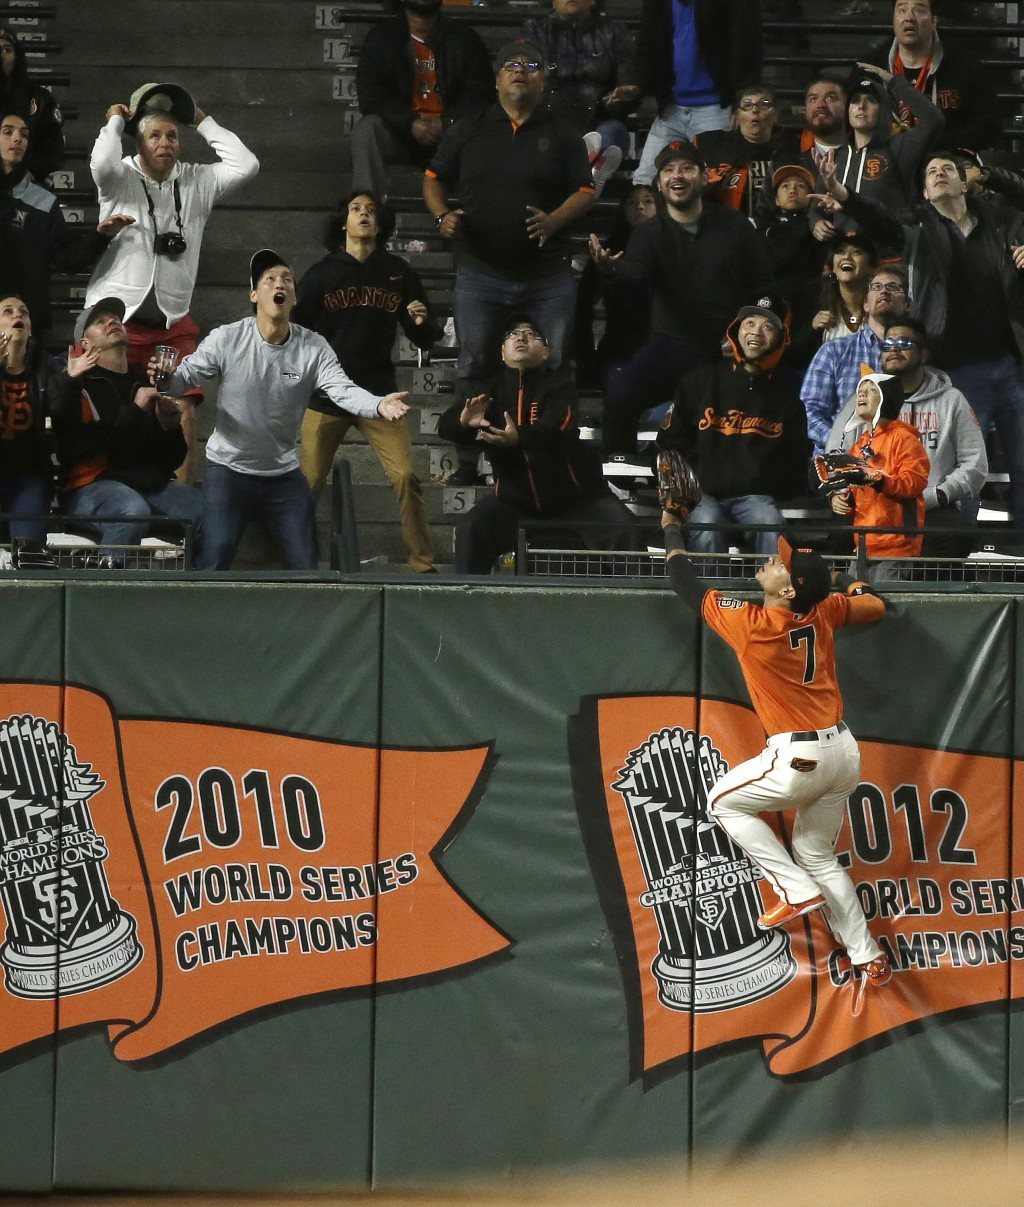 San Francisco Giants left fielder Gorkys Hernandez leaps up on the outfield wall and watches a home run hit by the Pittsburgh Pirates' Adeiny Hechavar